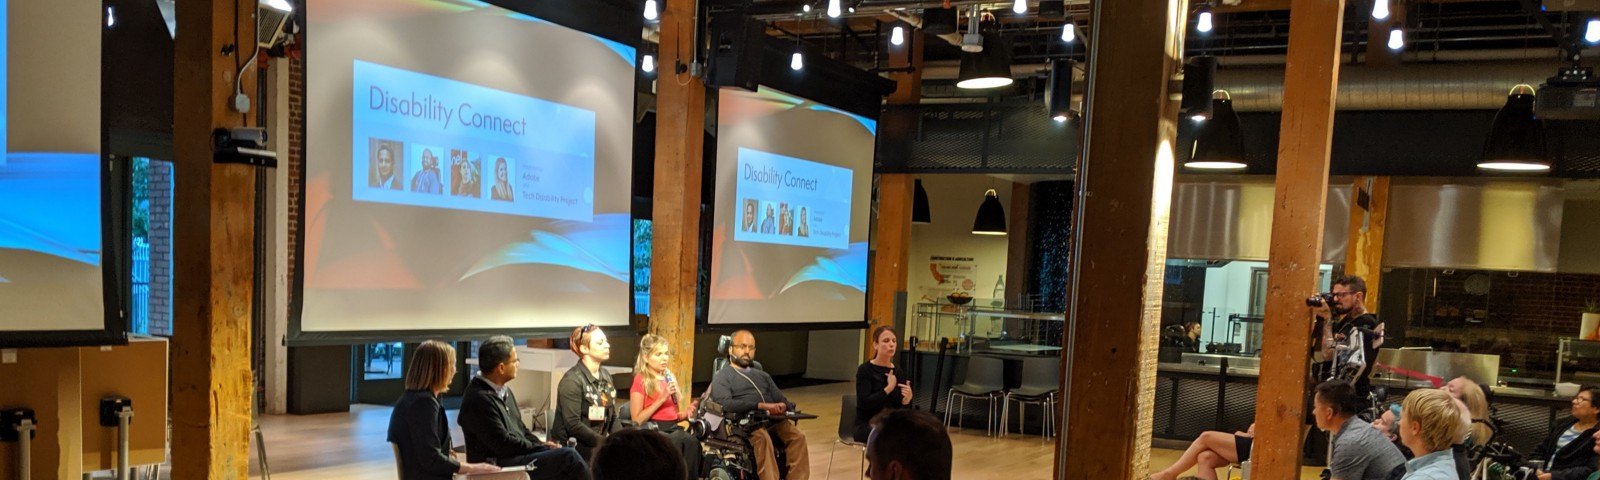 4 panelists, a moderator, and an ASL interpreter sit in front of an audience during Disability Connect at Adobe SF.